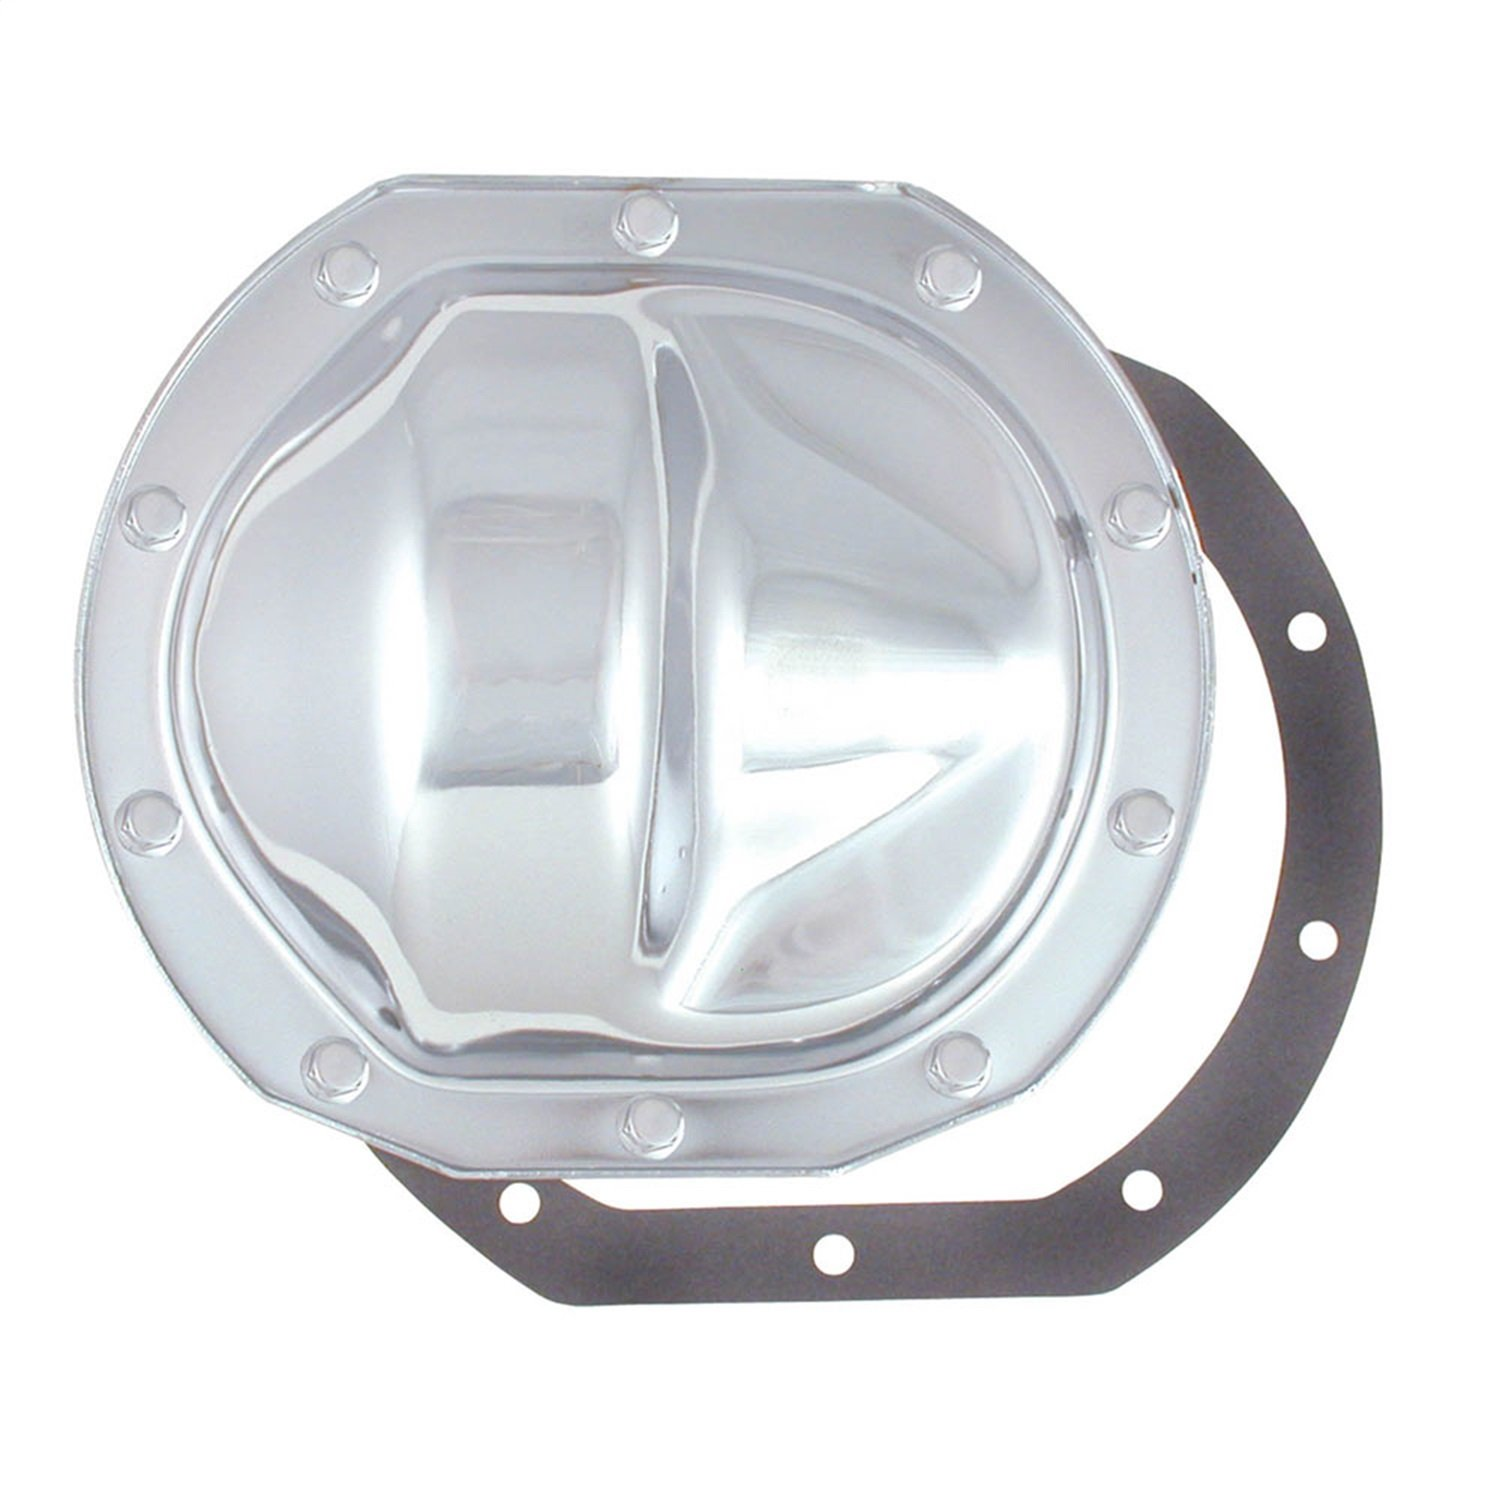 Spectre Performance 6073 7.5' 10-Bolt Differential Cover for Ford